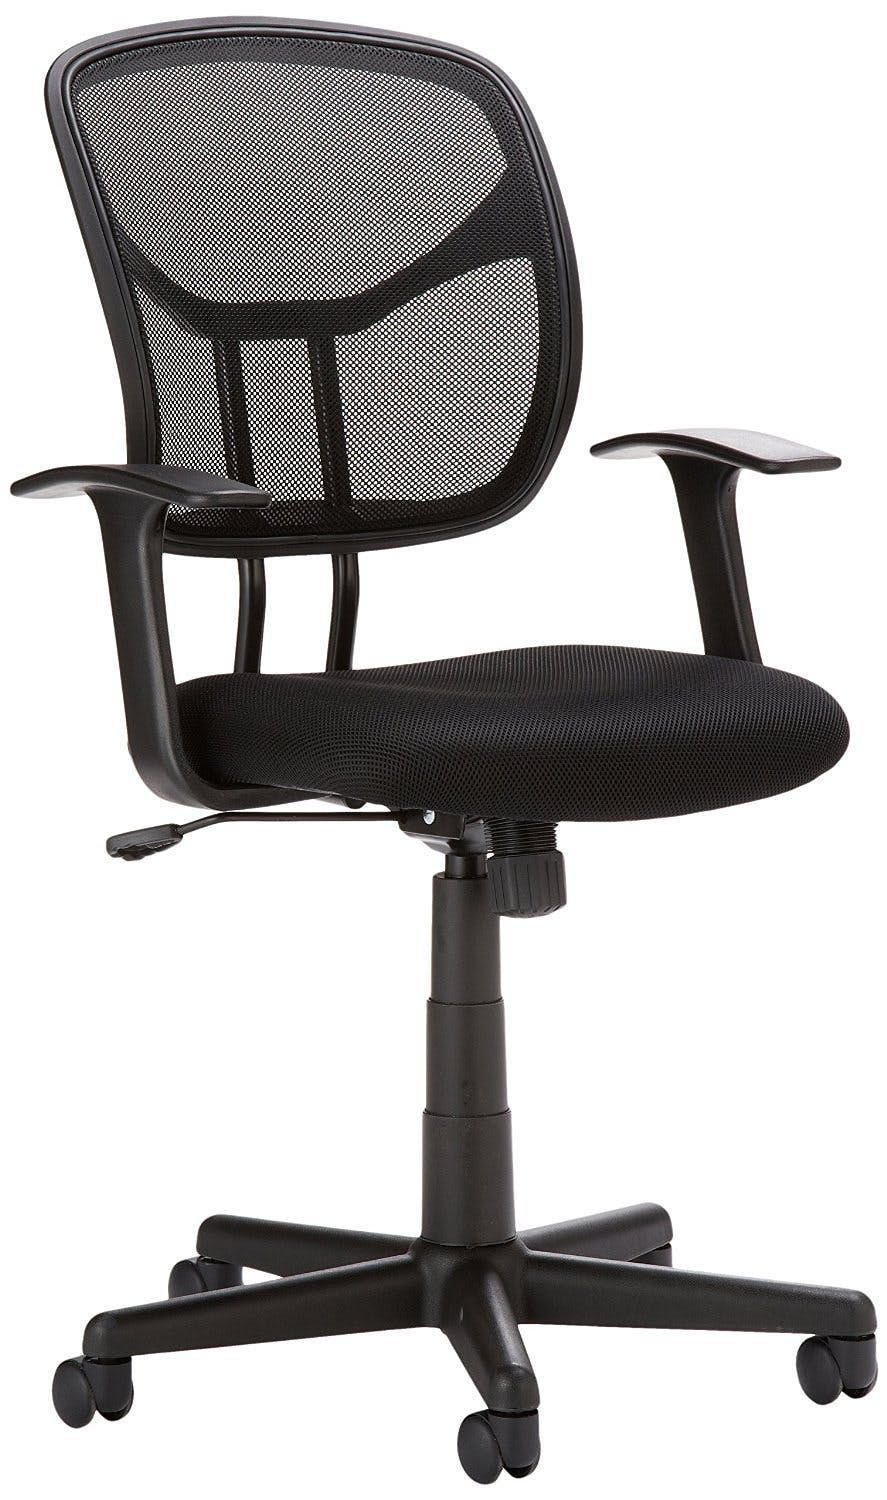 The Best Office Chairs (With images) Best ergonomic